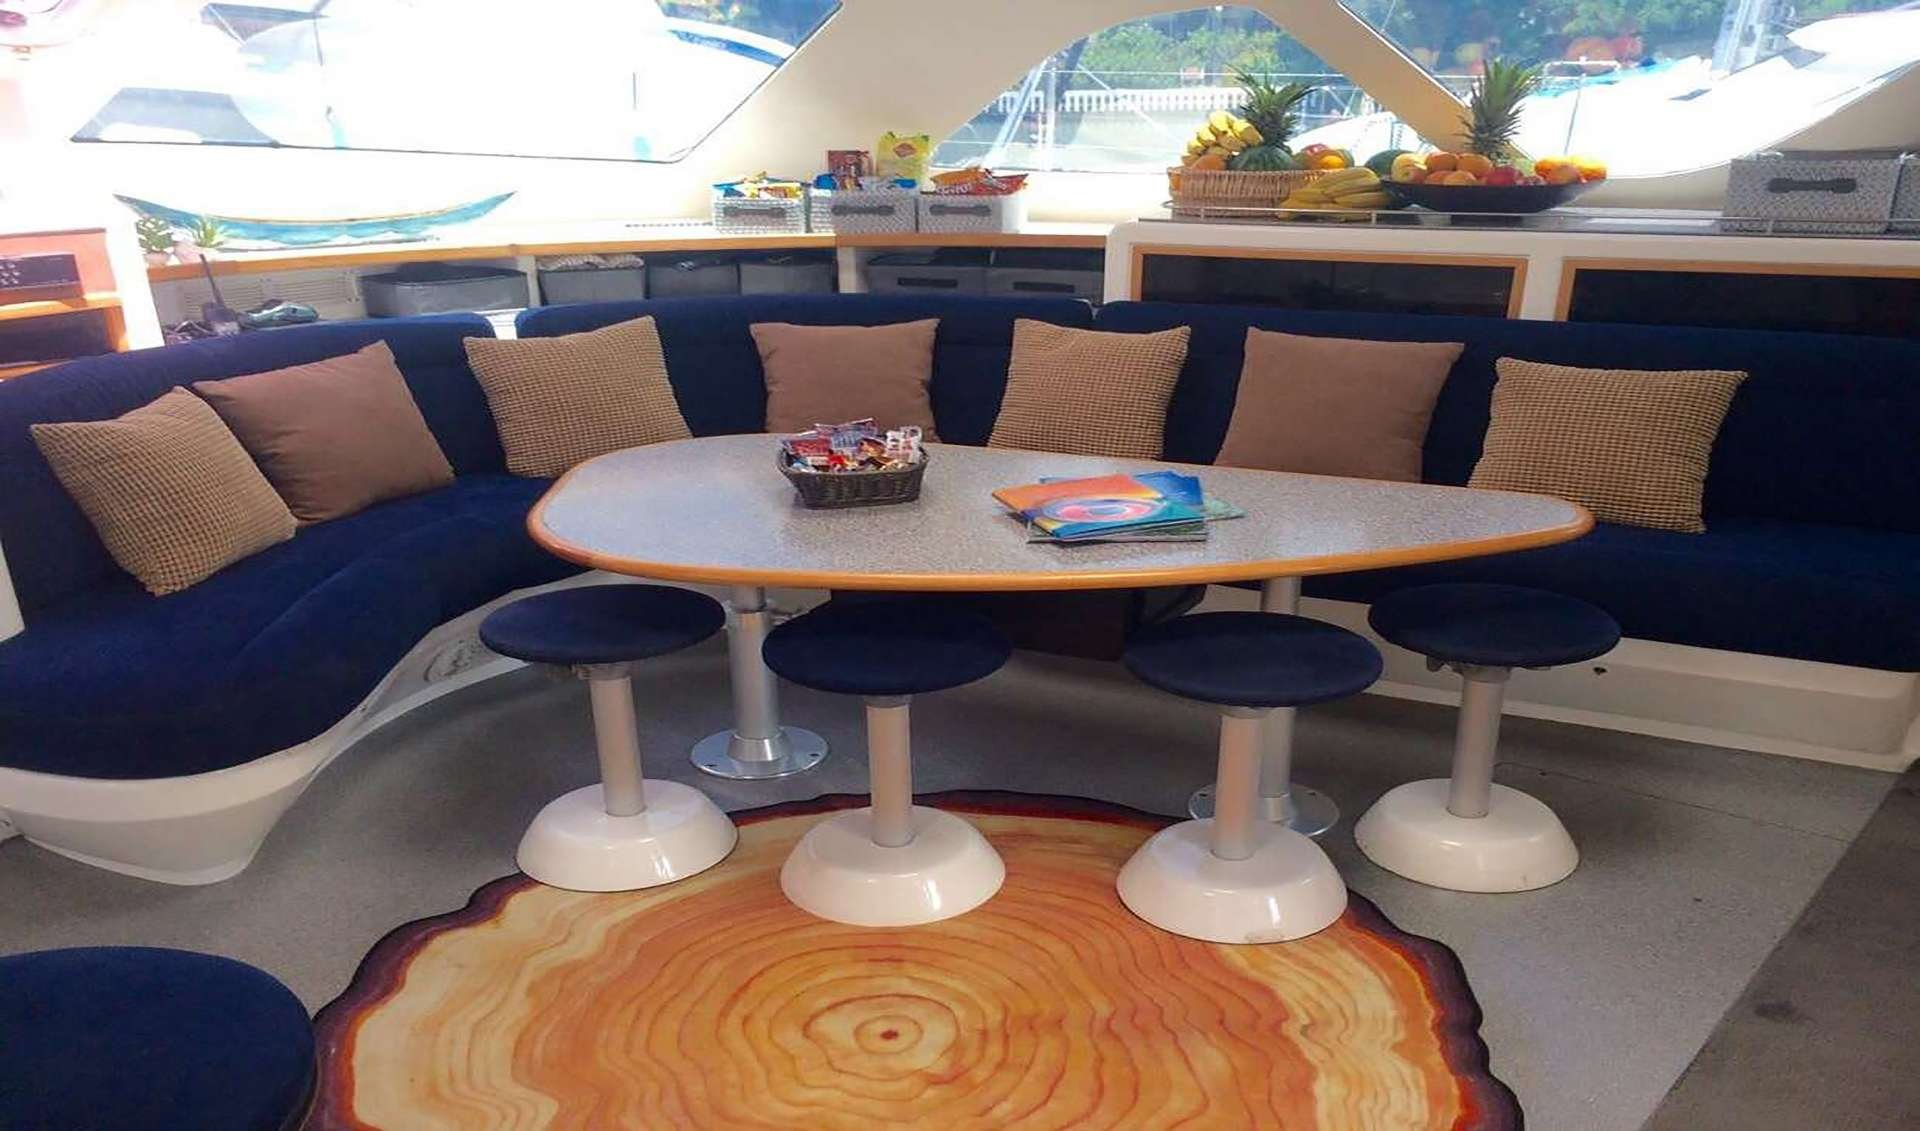 Catamaran Yacht 'YES DEAR' Salon seating area, 10 PAX, 2 Crew, 58.00 Ft, 17.00 Meters, Built 2007, VOYAGE yacht, Refit Year 2012